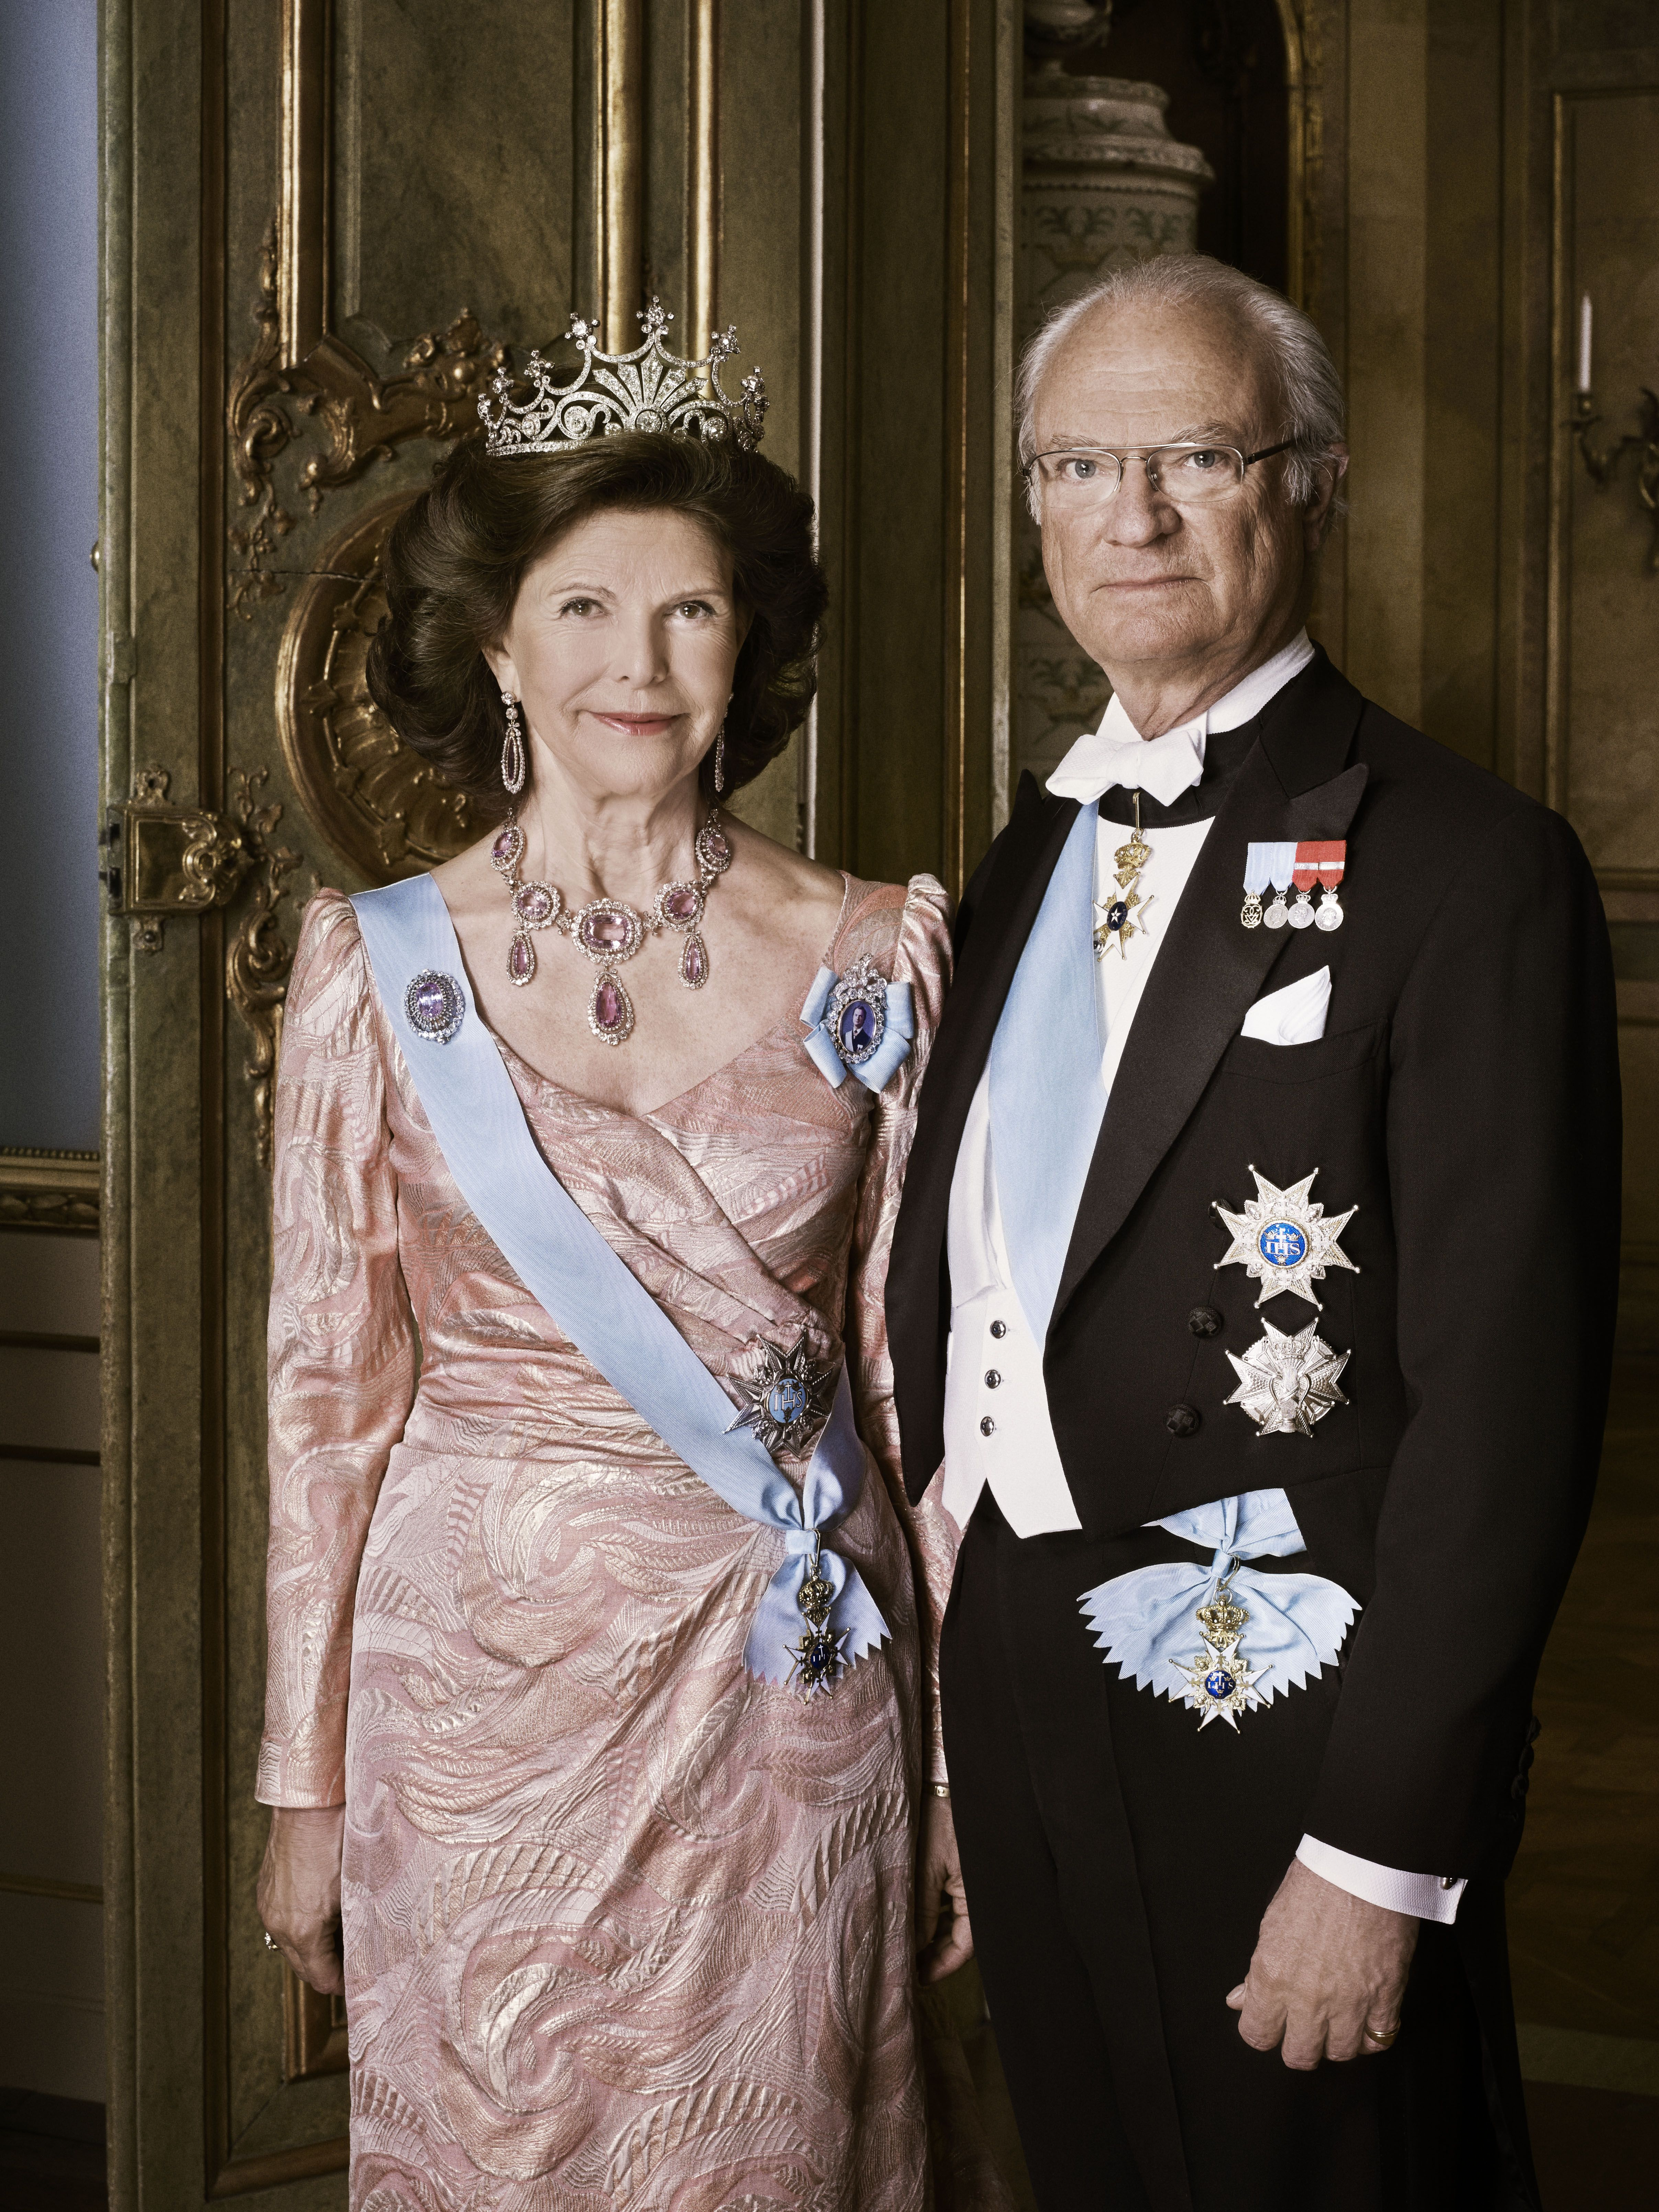 T.T.M.M. King Carl XVI Gustav & Queen Silvia of Sweden – Official Portrait by Anna-Lena Ahlström (2014)